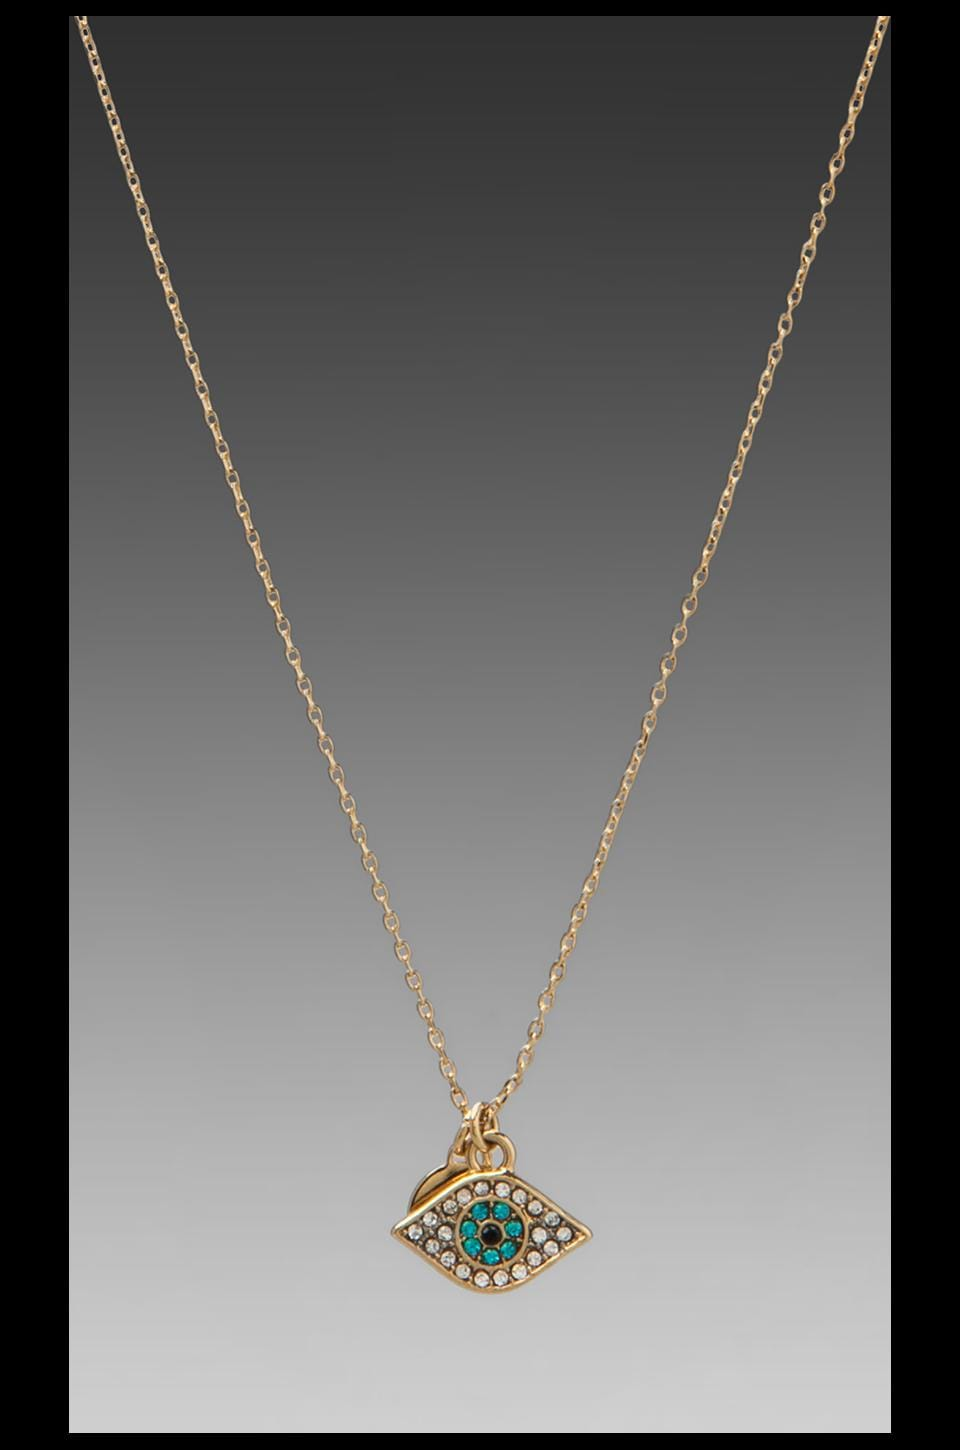 Juicy Couture Evil Eye Necklace in Gold